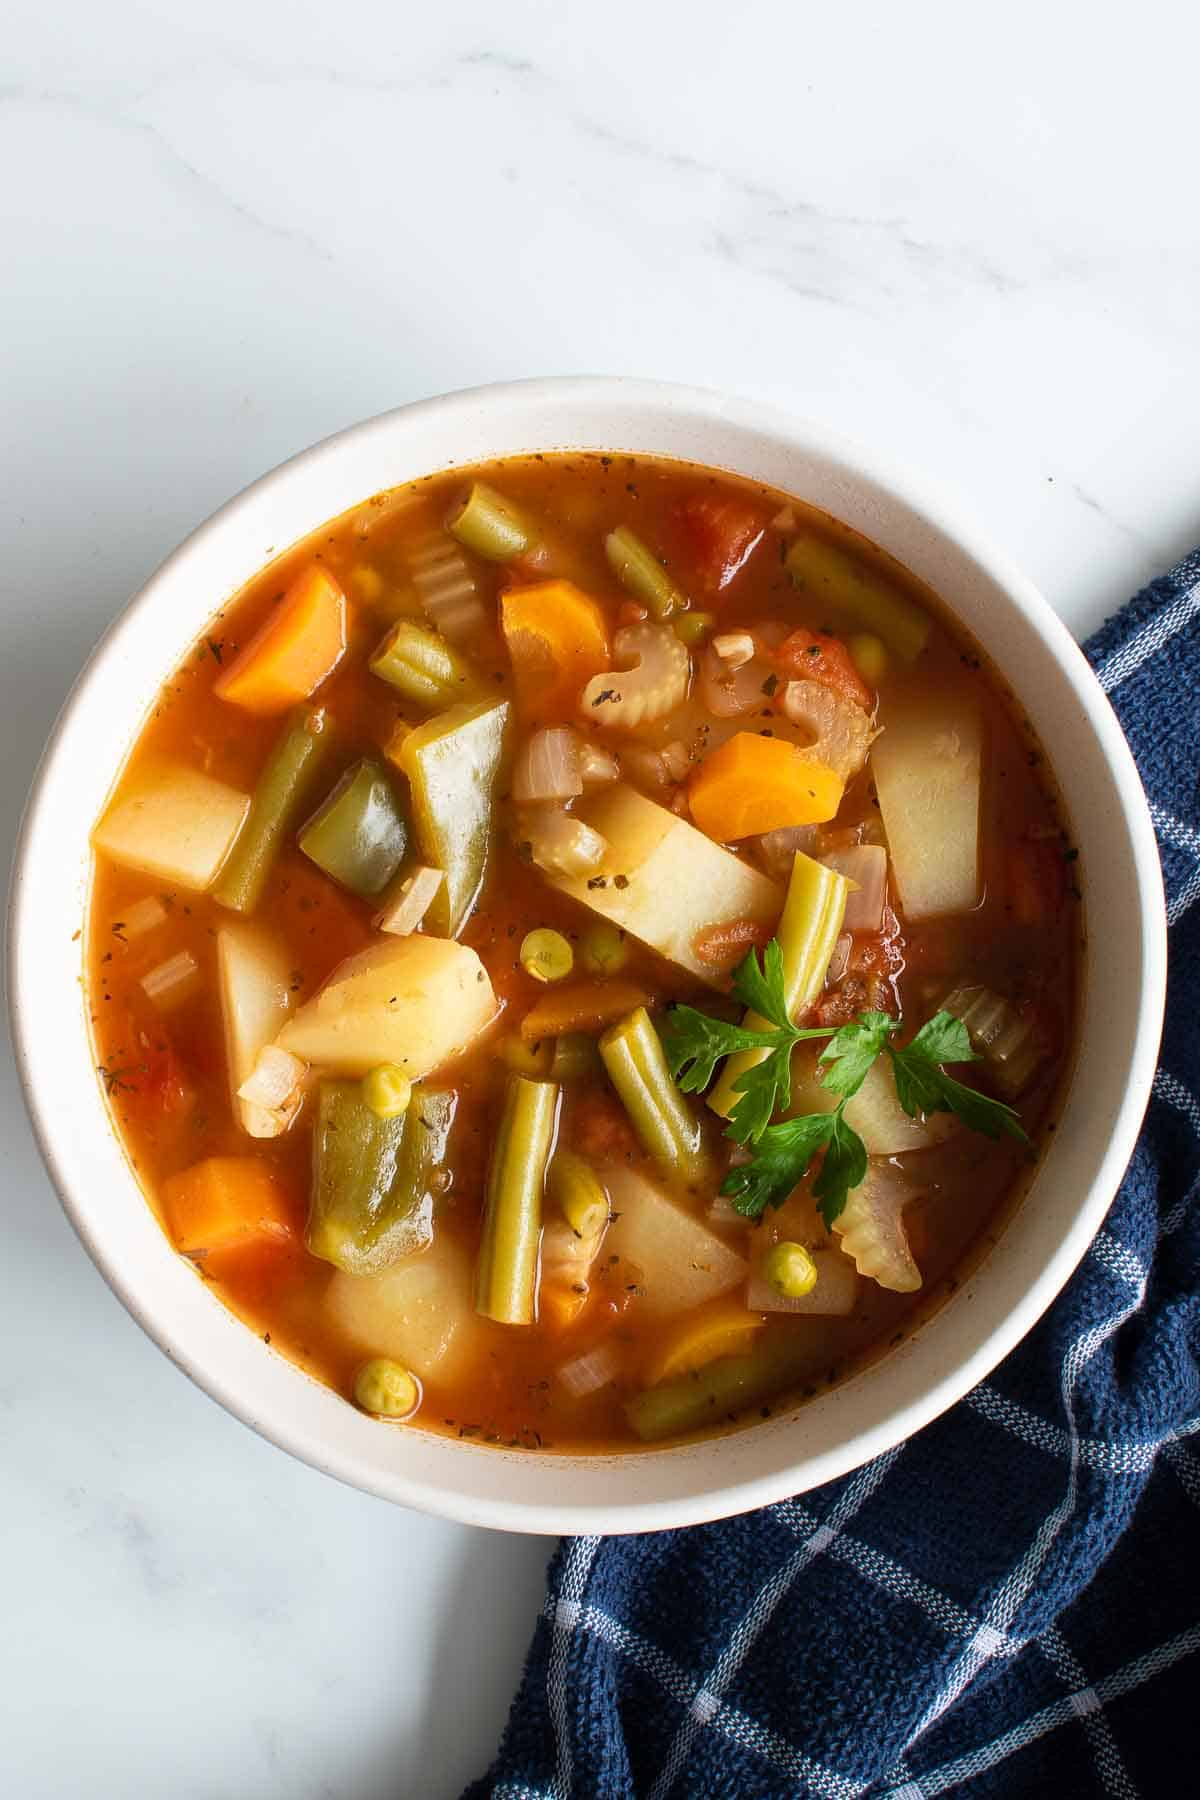 A bowl of pressure cooked vegetable soup.